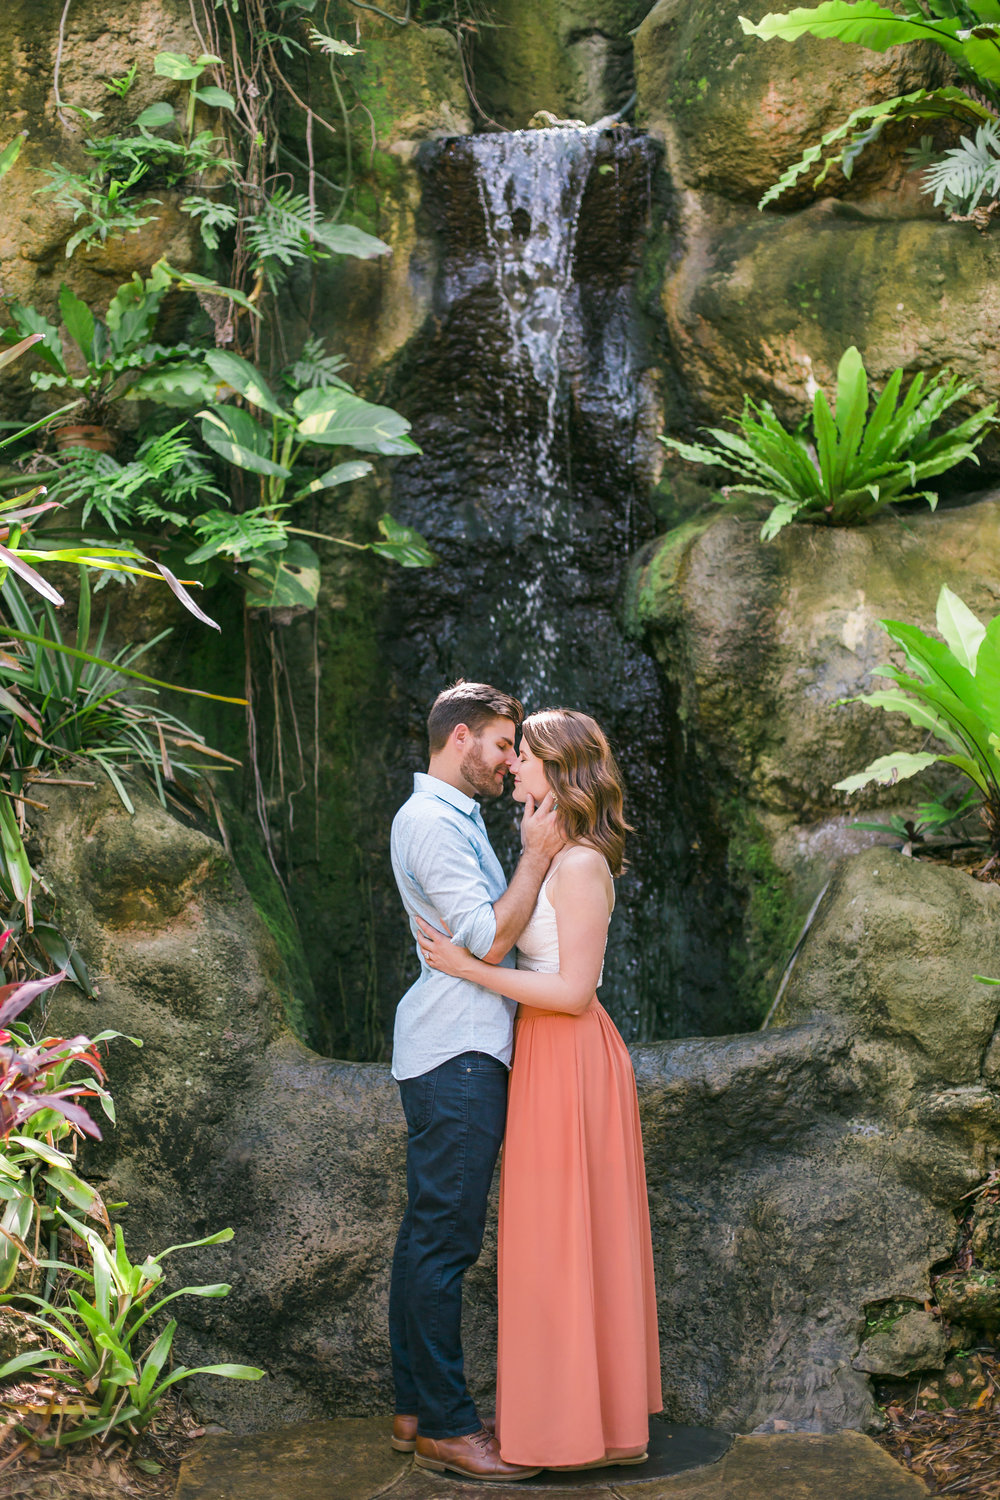 Kalli + Ryan - St. Pete Wedding Photographer - Sunken Gardens Engagement Photography - Preview Photos - Emily & Co. Photography (60).jpg